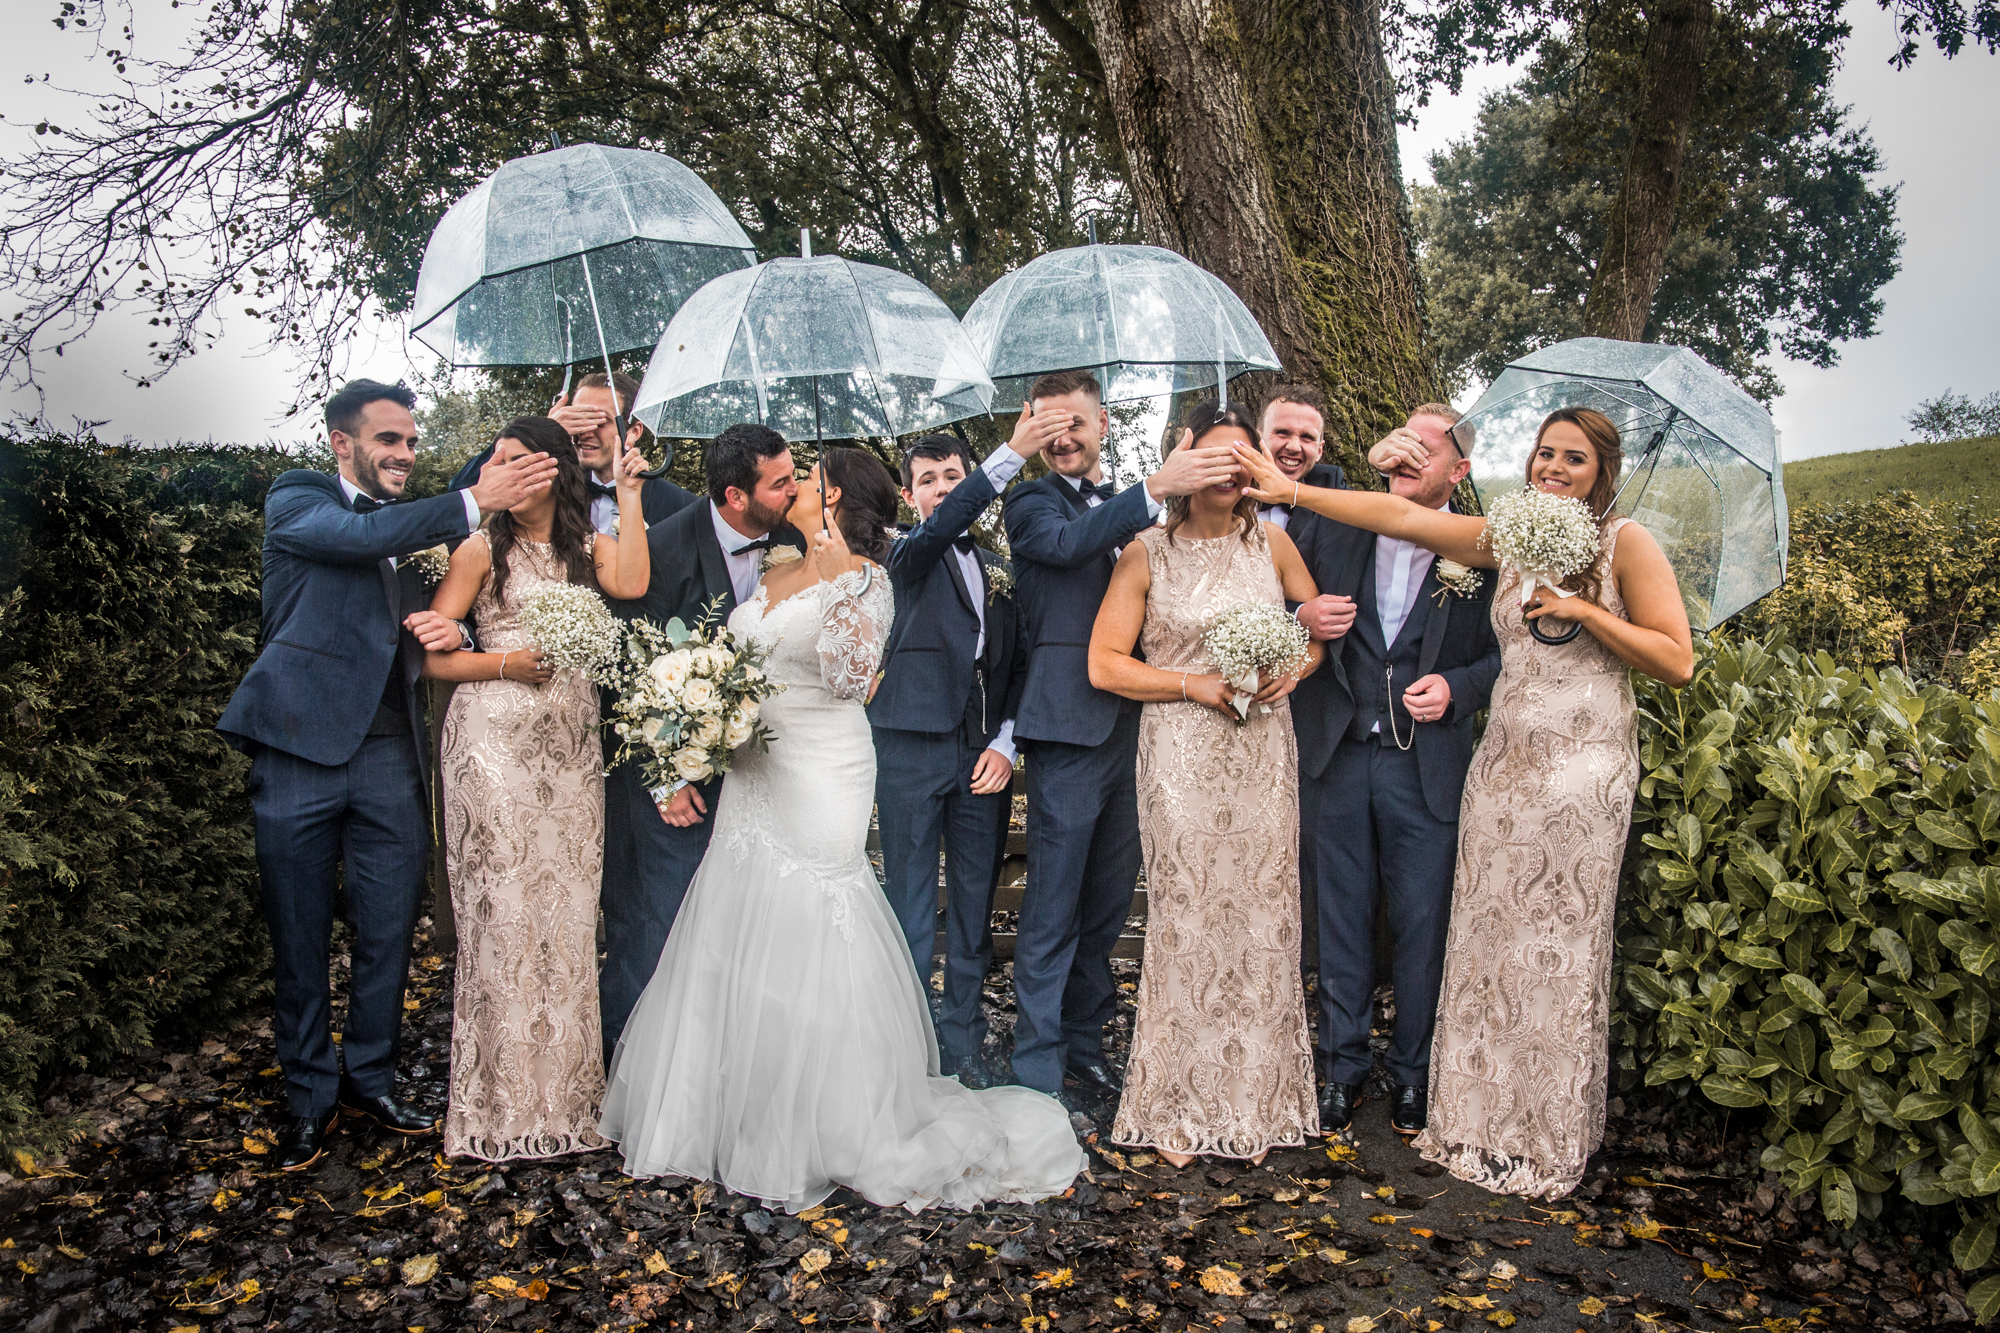 Rain and umbrella Wedding Photography in Swansea and the Gower